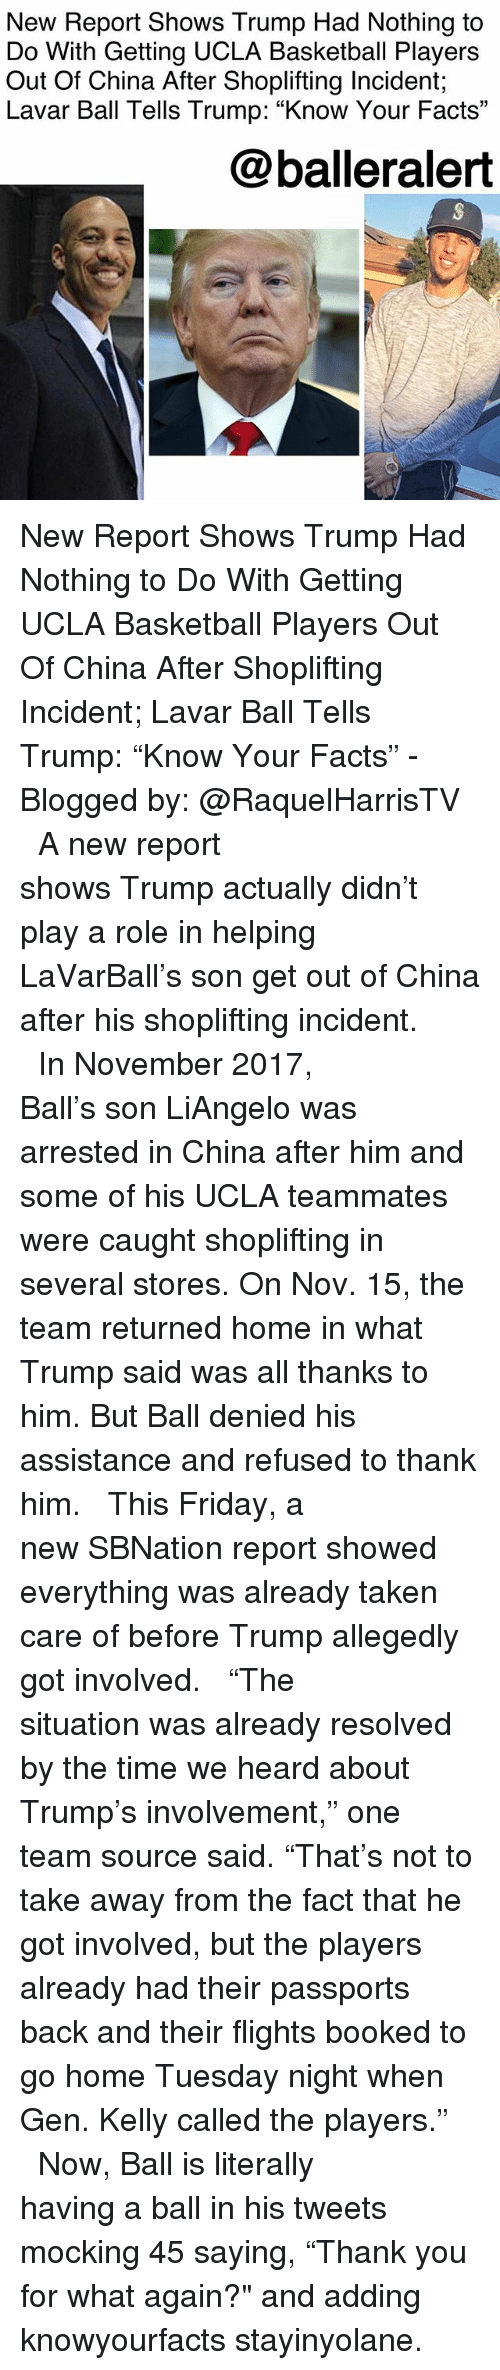 "Basketball, Facts, and Friday: New Report Shows Trump Had Nothing to  Do With Getting UCLA Basketball Players  Out Of China After Shoplifting Incident;  Lavar Ball Tells Trump: ""Know Your Facts""  @balleralert New Report Shows Trump Had Nothing to Do With Getting UCLA Basketball Players Out Of China After Shoplifting Incident; Lavar Ball Tells Trump: ""Know Your Facts"" - Blogged by: @RaquelHarrisTV ⠀⠀⠀⠀⠀⠀⠀⠀⠀ ⠀⠀⠀⠀⠀⠀⠀⠀⠀ A new report shows Trump actually didn't play a role in helping LaVarBall's son get out of China after his shoplifting incident. ⠀⠀⠀⠀⠀⠀⠀⠀⠀ ⠀⠀⠀⠀⠀⠀⠀⠀⠀ In November 2017, Ball's son LiAngelo was arrested in China after him and some of his UCLA teammates were caught shoplifting in several stores. On Nov. 15, the team returned home in what Trump said was all thanks to him. But Ball denied his assistance and refused to thank him. ⠀⠀⠀⠀⠀⠀⠀⠀⠀ ⠀⠀⠀⠀⠀⠀⠀⠀⠀ This Friday, a new SBNation report showed everything was already taken care of before Trump allegedly got involved. ⠀⠀⠀⠀⠀⠀⠀⠀⠀ ⠀⠀⠀⠀⠀⠀⠀⠀⠀ ""The situation was already resolved by the time we heard about Trump's involvement,"" one team source said. ""That's not to take away from the fact that he got involved, but the players already had their passports back and their flights booked to go home Tuesday night when Gen. Kelly called the players."" ⠀⠀⠀⠀⠀⠀⠀⠀⠀ ⠀⠀⠀⠀⠀⠀⠀⠀⠀ Now, Ball is literally having a ball in his tweets mocking 45 saying, ""Thank you for what again?"" and adding knowyourfacts stayinyolane."